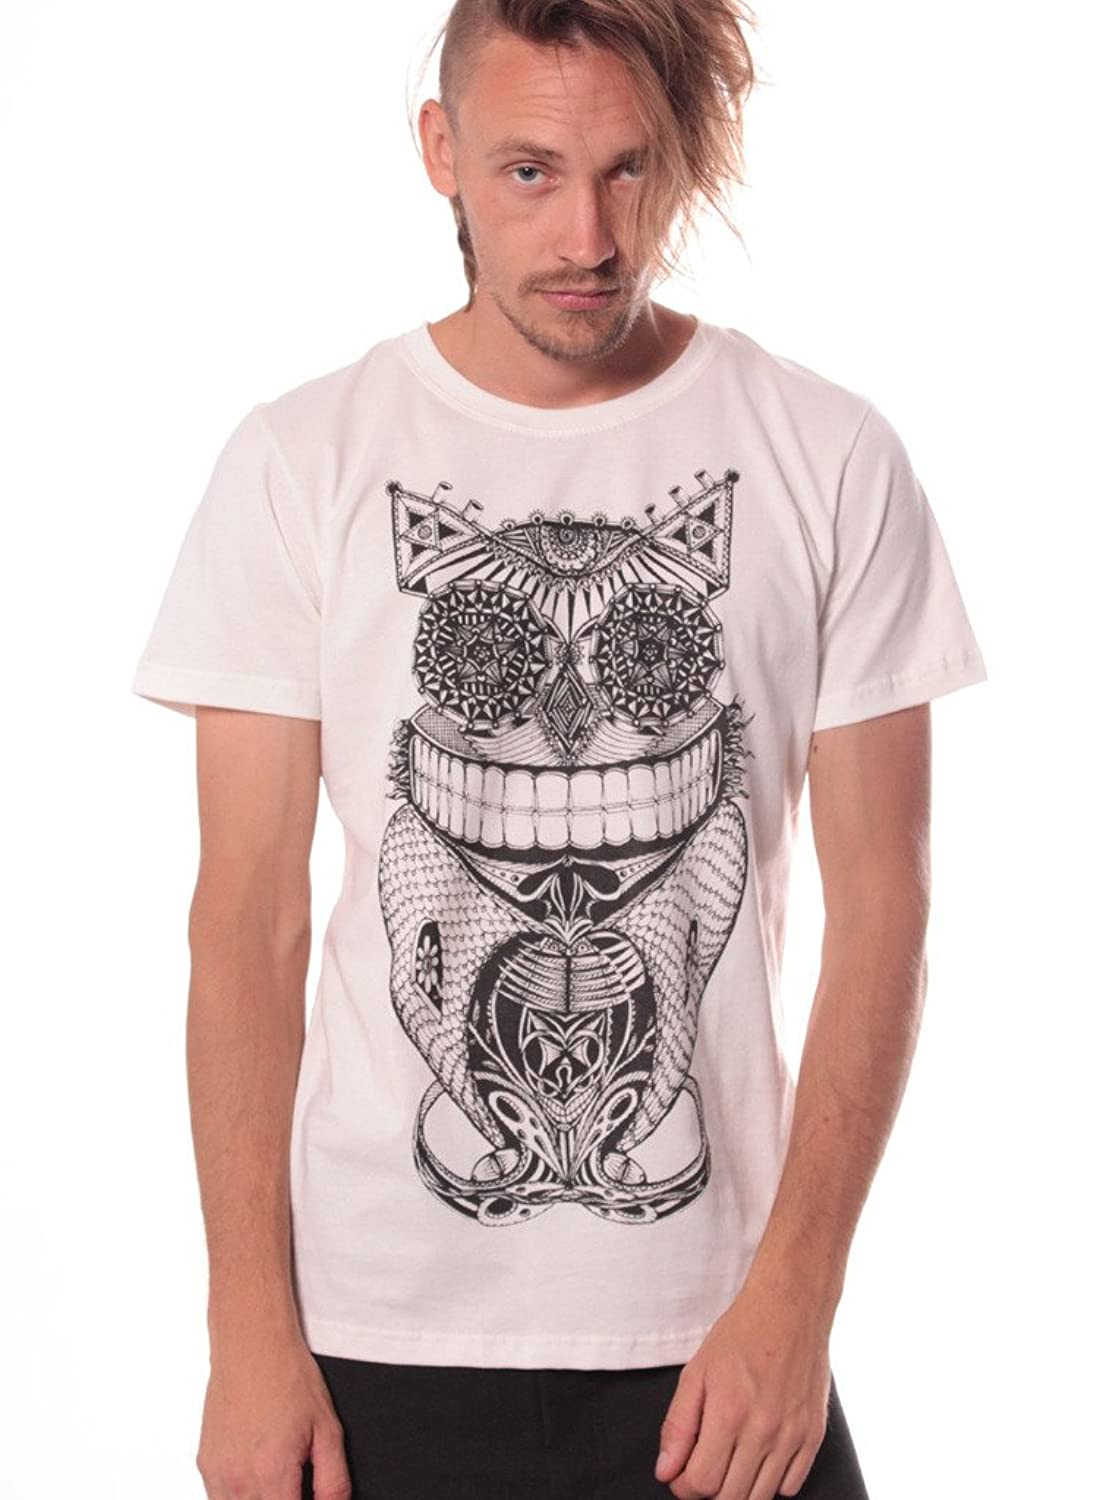 Men's Steampunk Owl T Shirt - 100% Cotton Tee Regular Fit - Street Wear Clothing